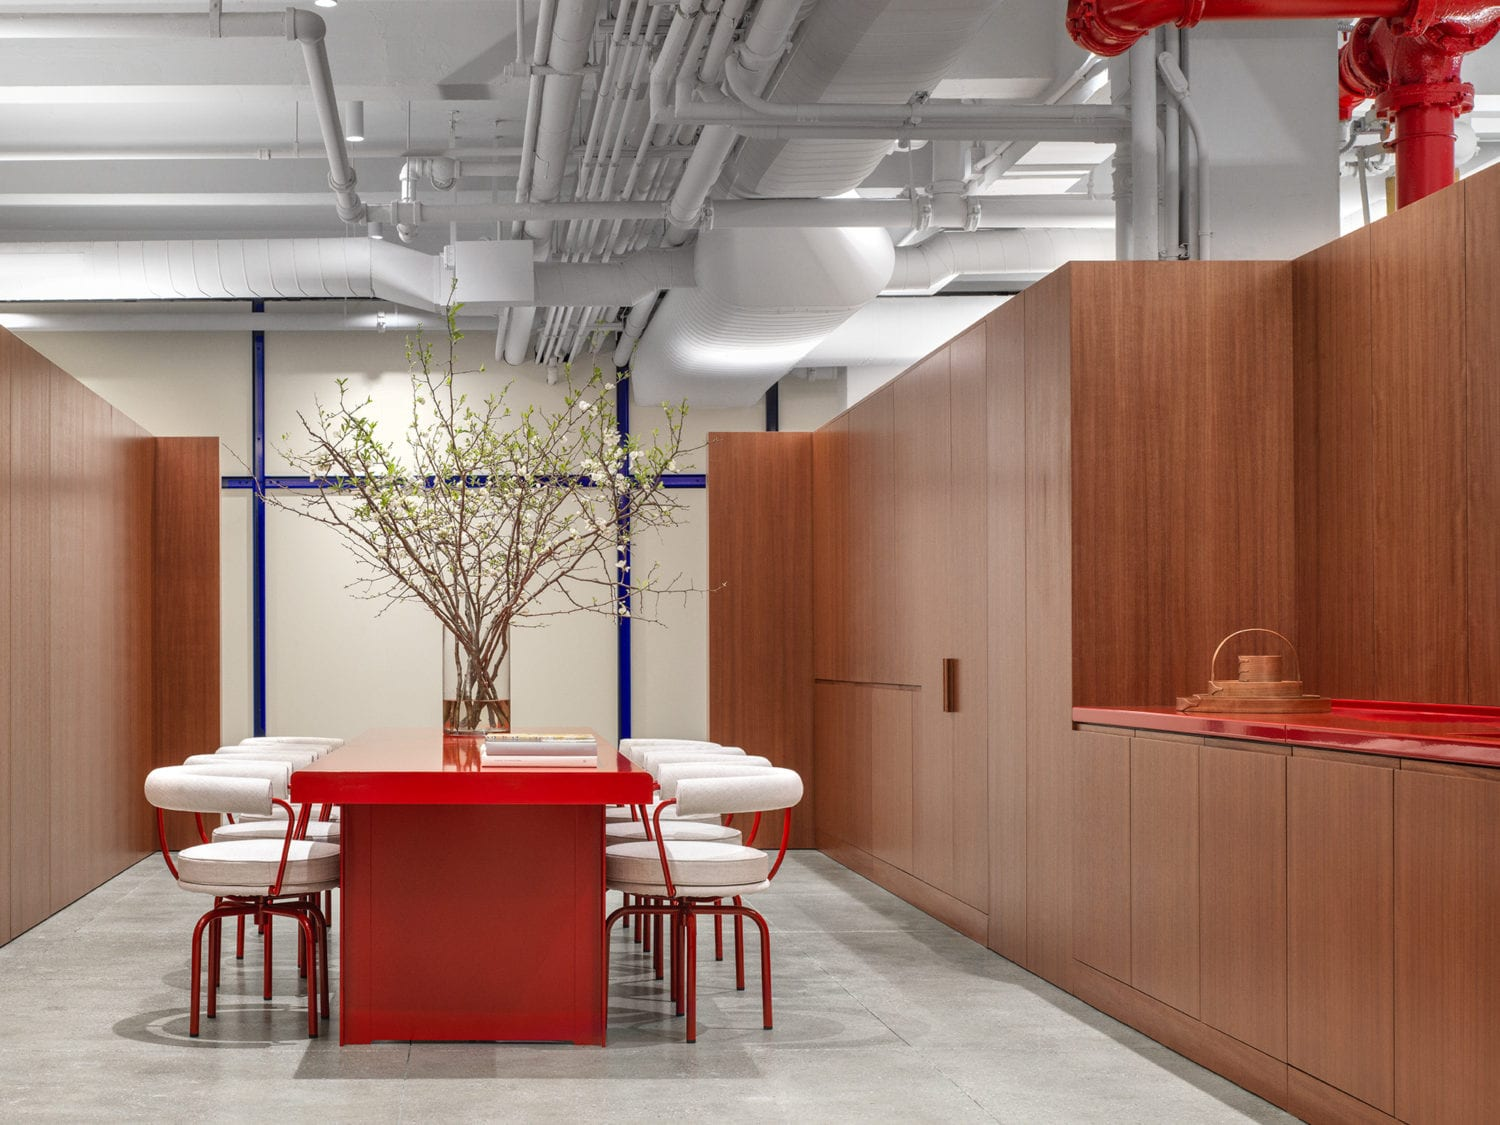 New York Office by Halleröd | Yellowtrace